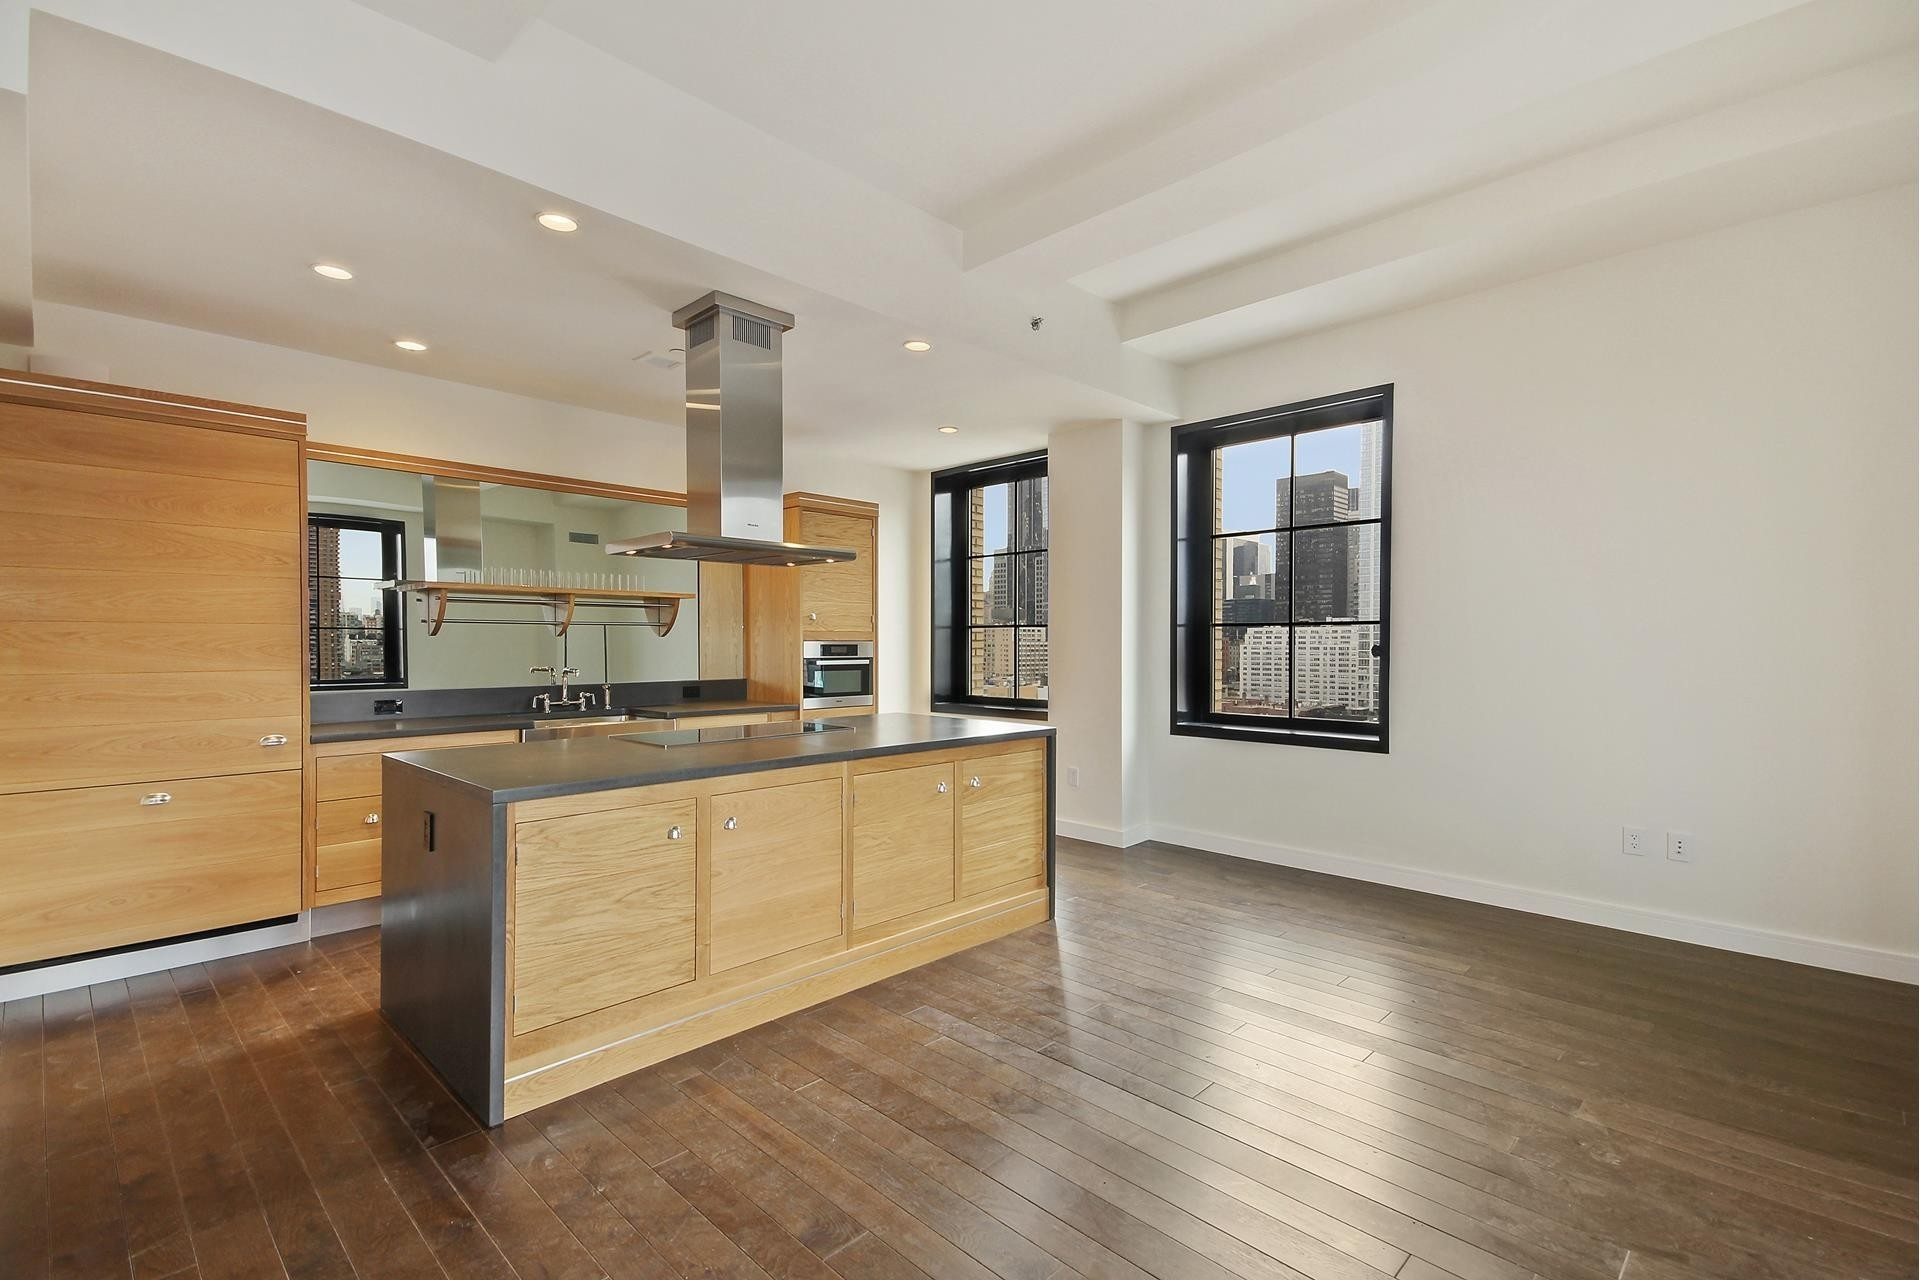 Condominium 在 Stella Tower, 425 West 50th St, 12C 纽约